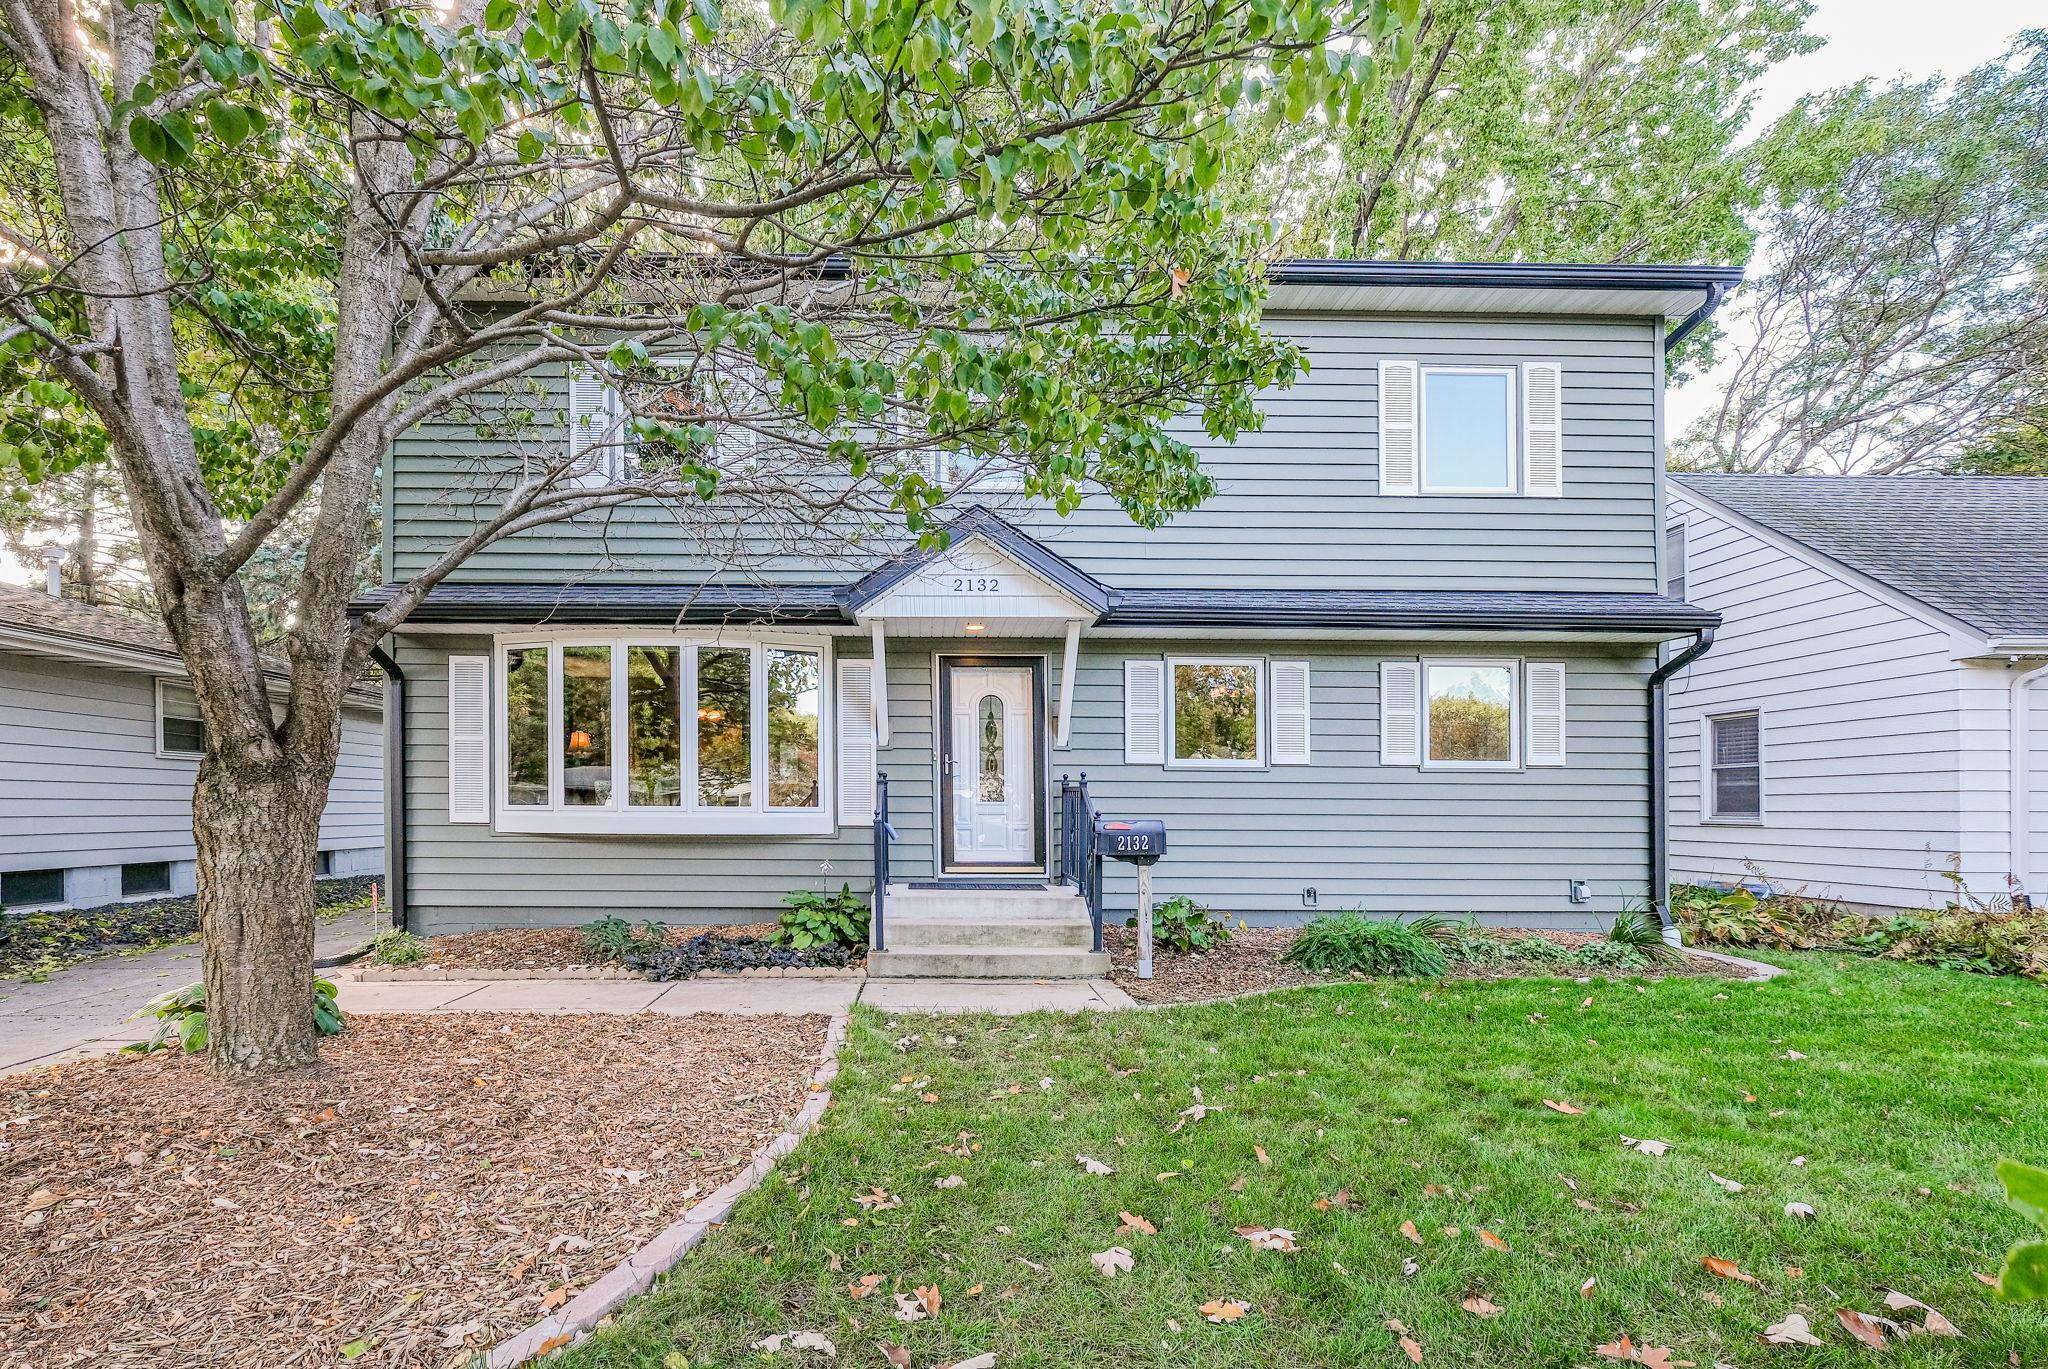 2132 N Upland Crest Property Photo - Columbia Heights, MN real estate listing